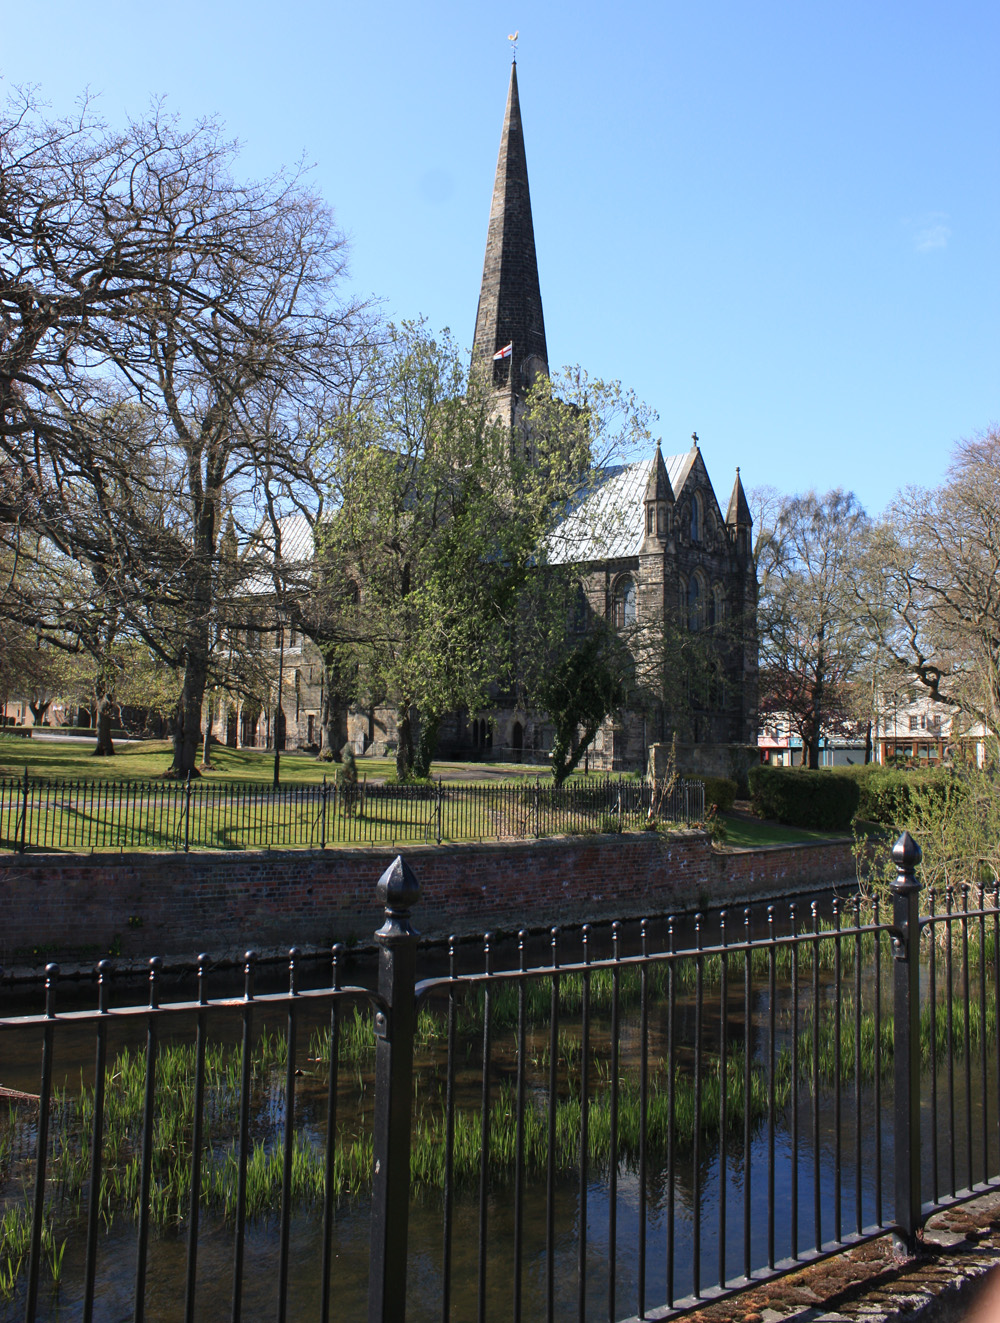 River Skerne and Church of St Cuthbert, Darlington